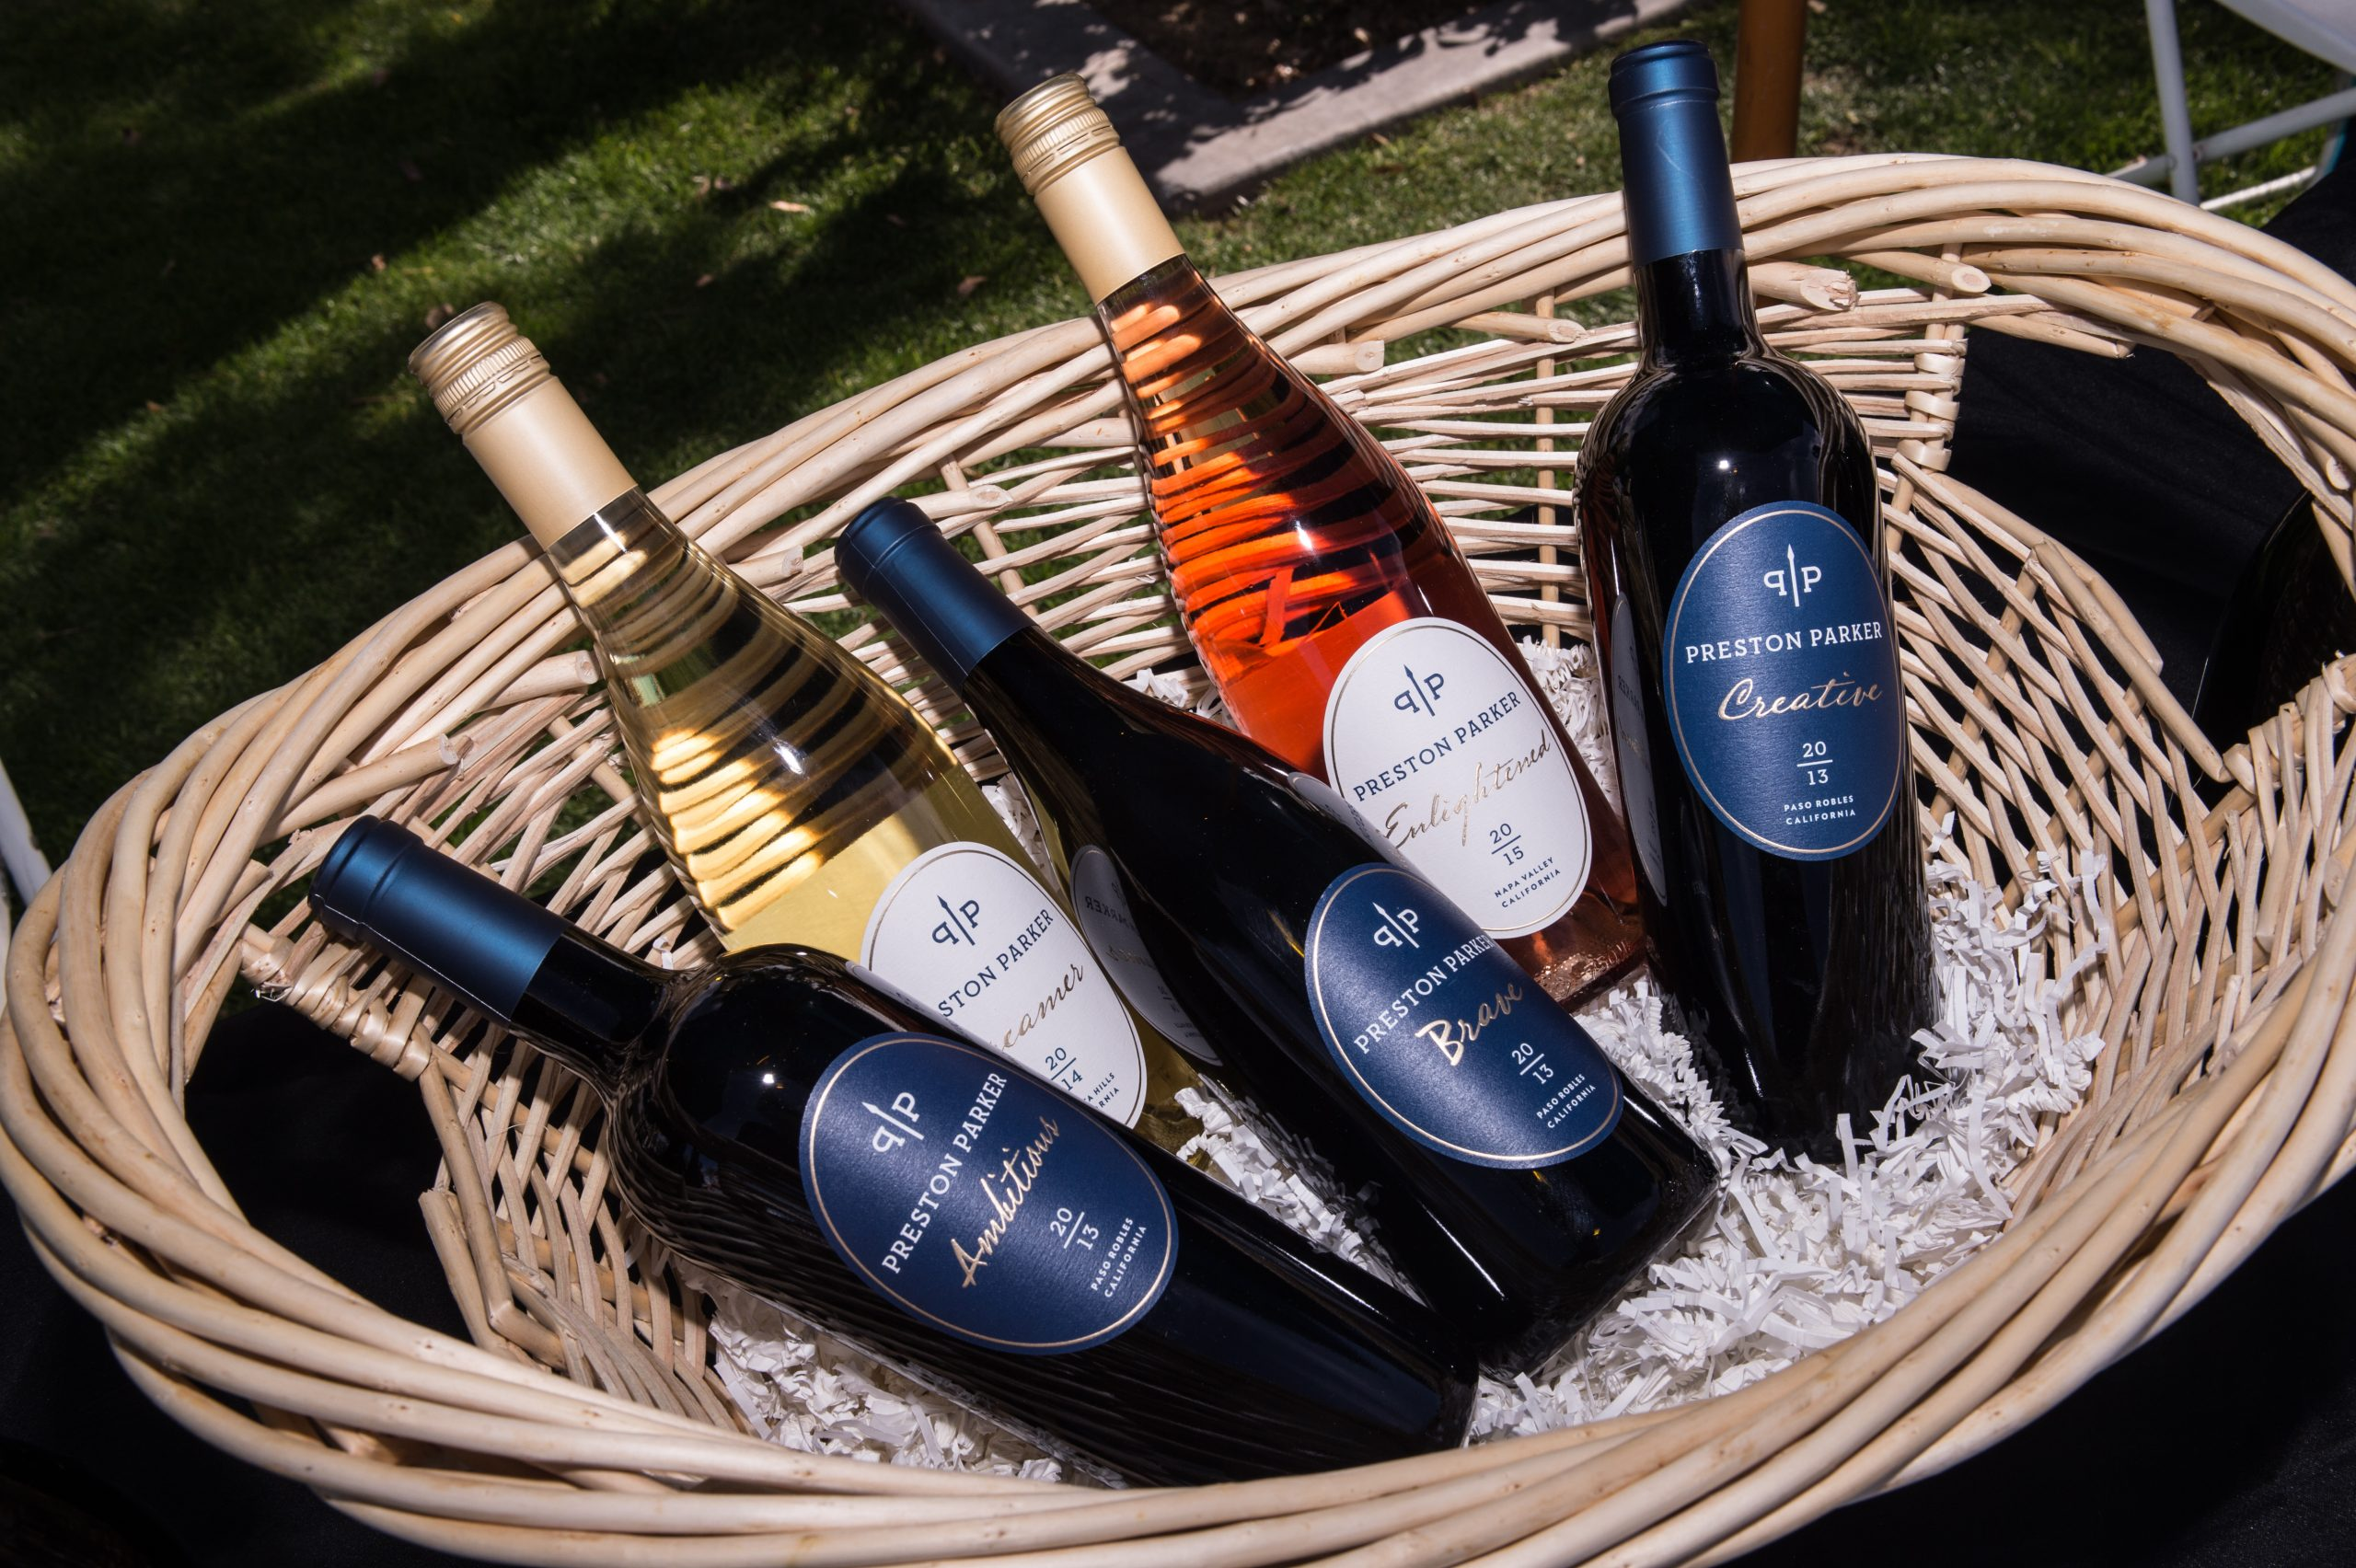 There's a huge selection of wine to choose from at the Rancho Mirage Wine and Food Festival held annually in the California Desert